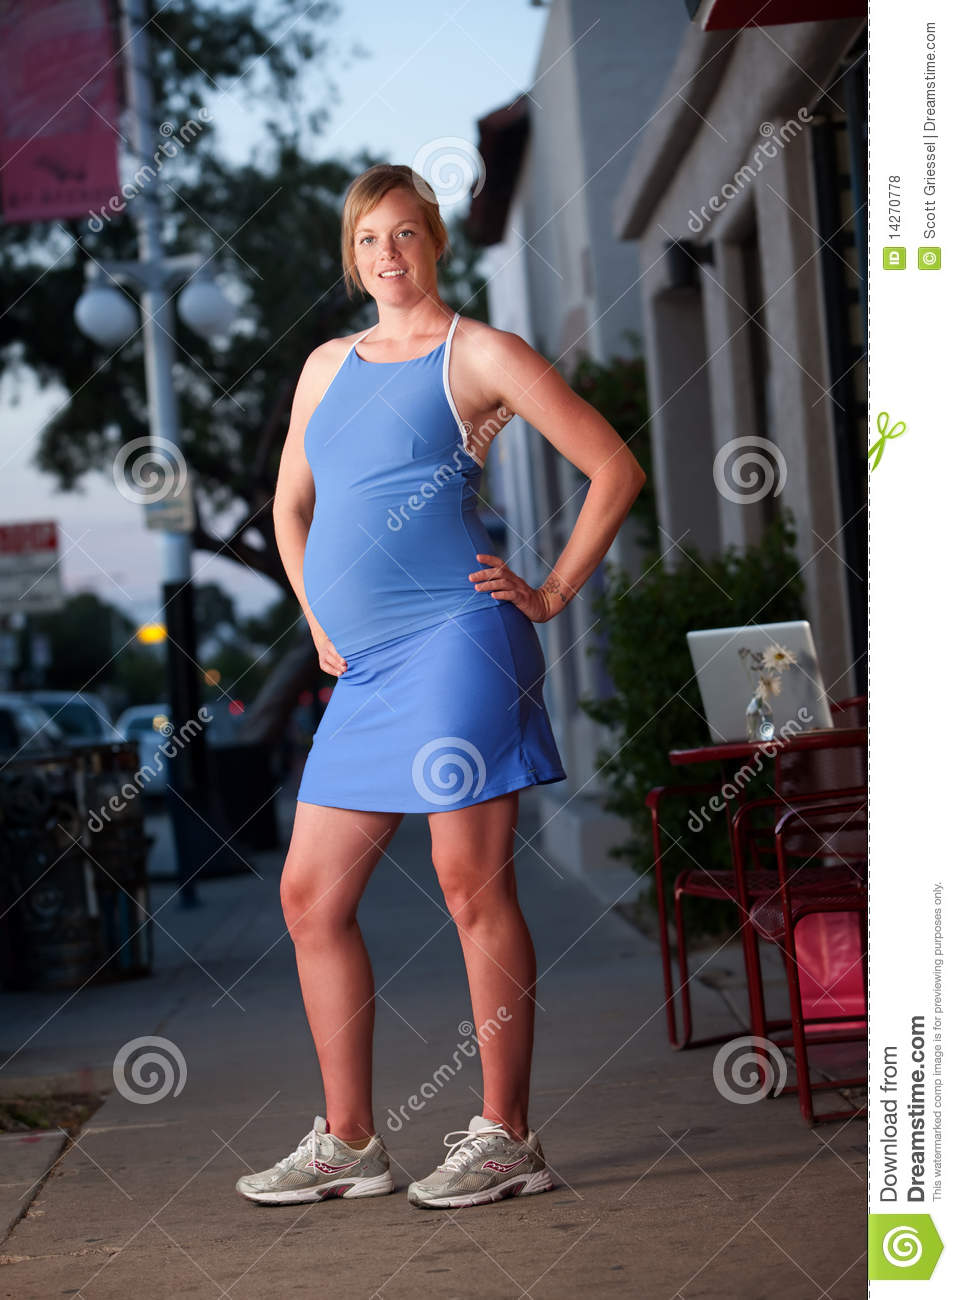 Fit Pregnant Woman Flexing Royalty Free Stock Photos ...